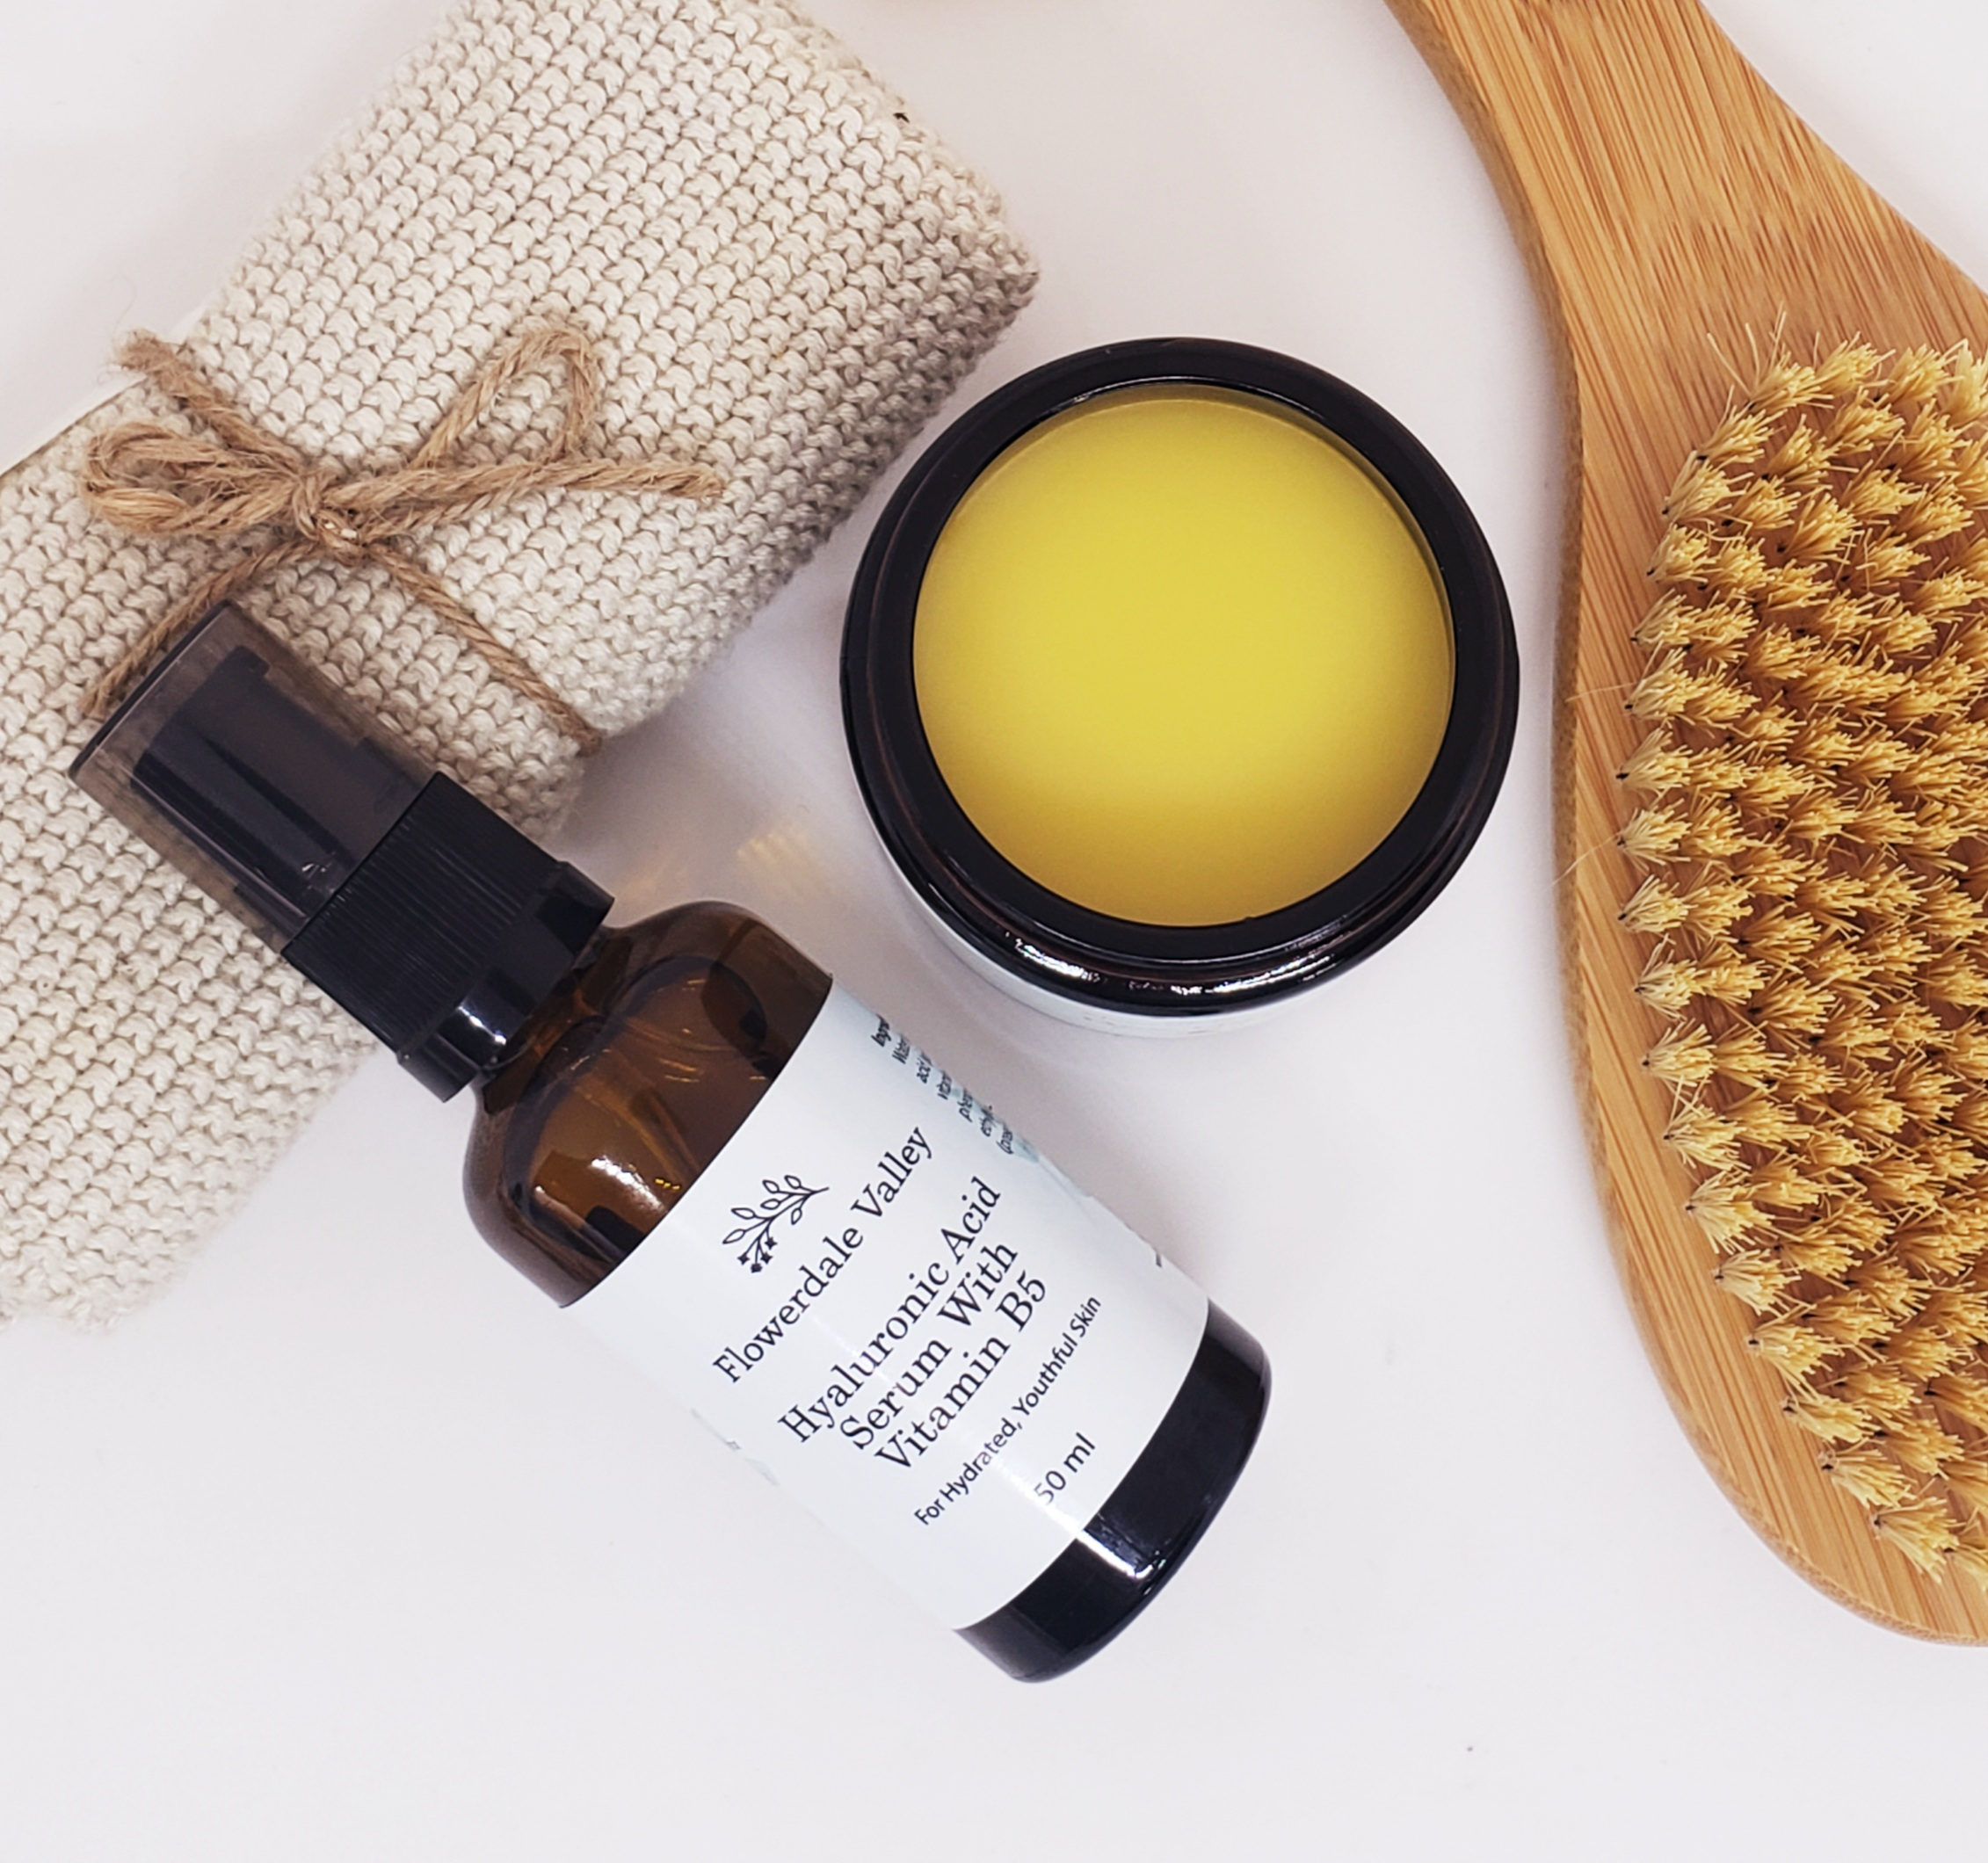 Flowerdale Valley Helps Australians Find Secret to a Healthy, Happy, Comfortable Skin With All-Natural Skincare Products